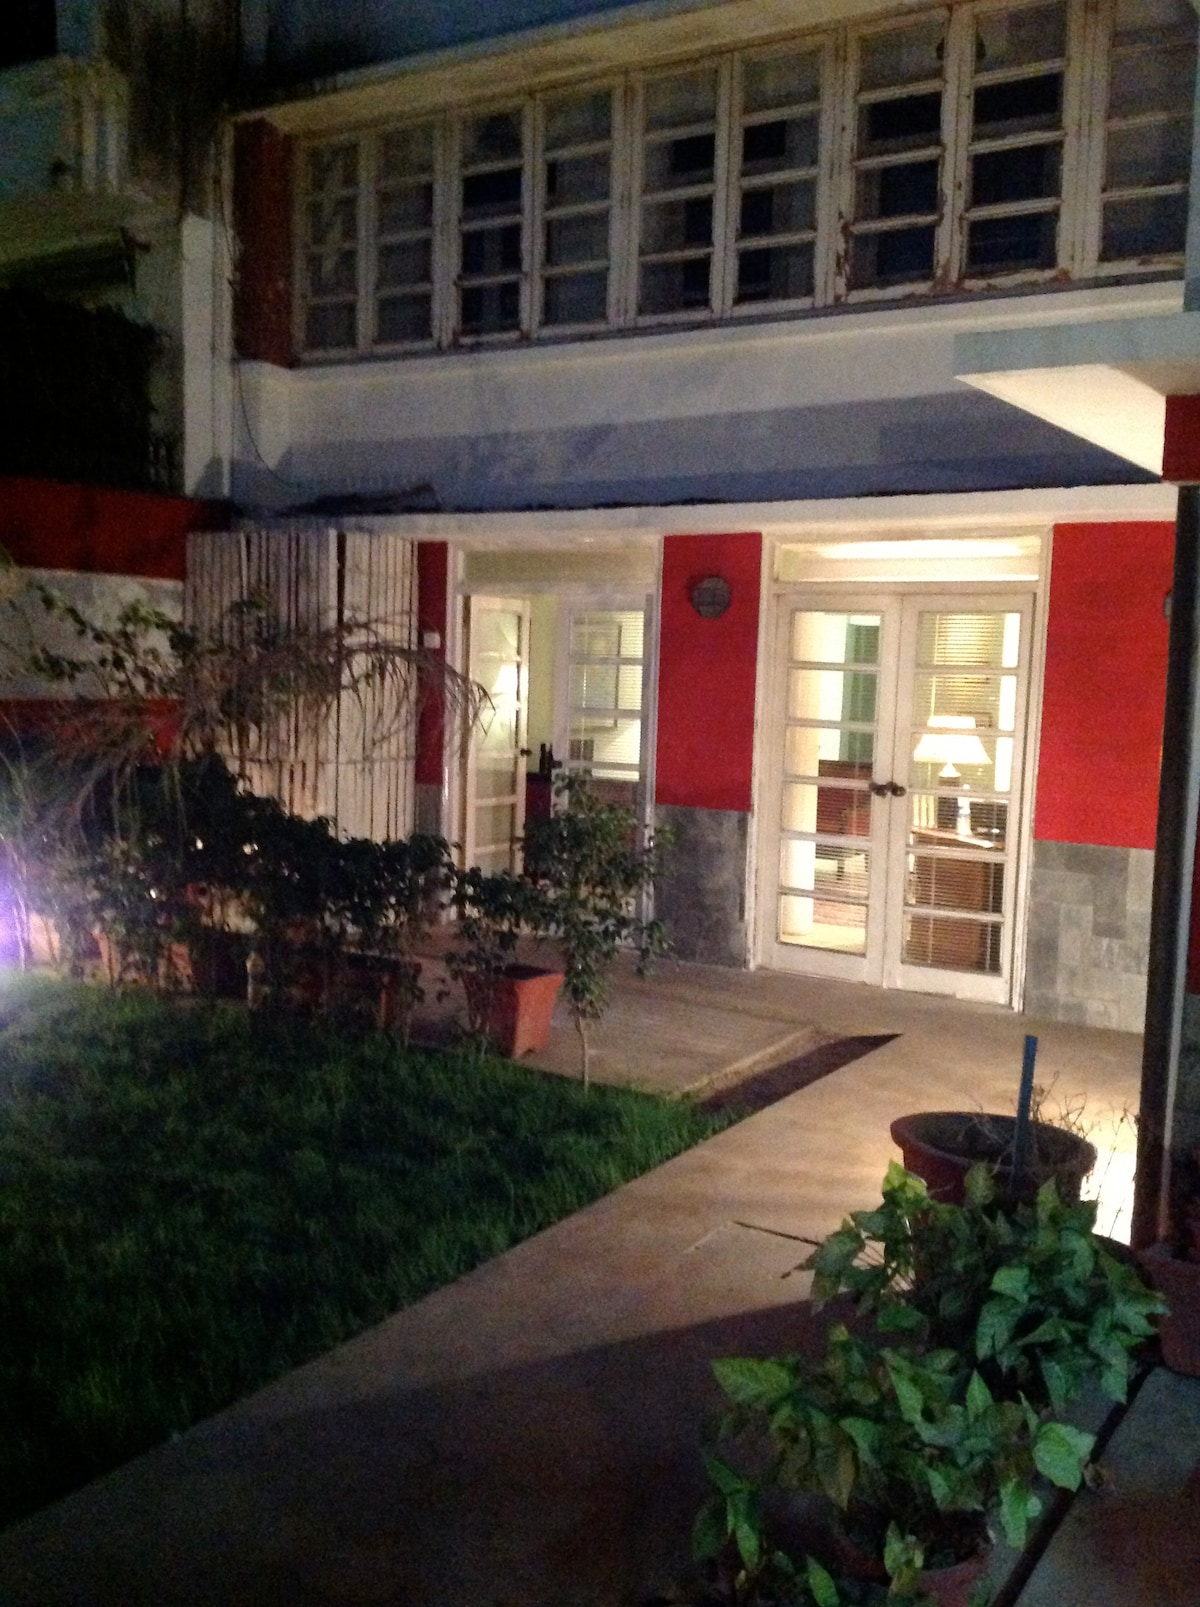 The garden and the French windows at night